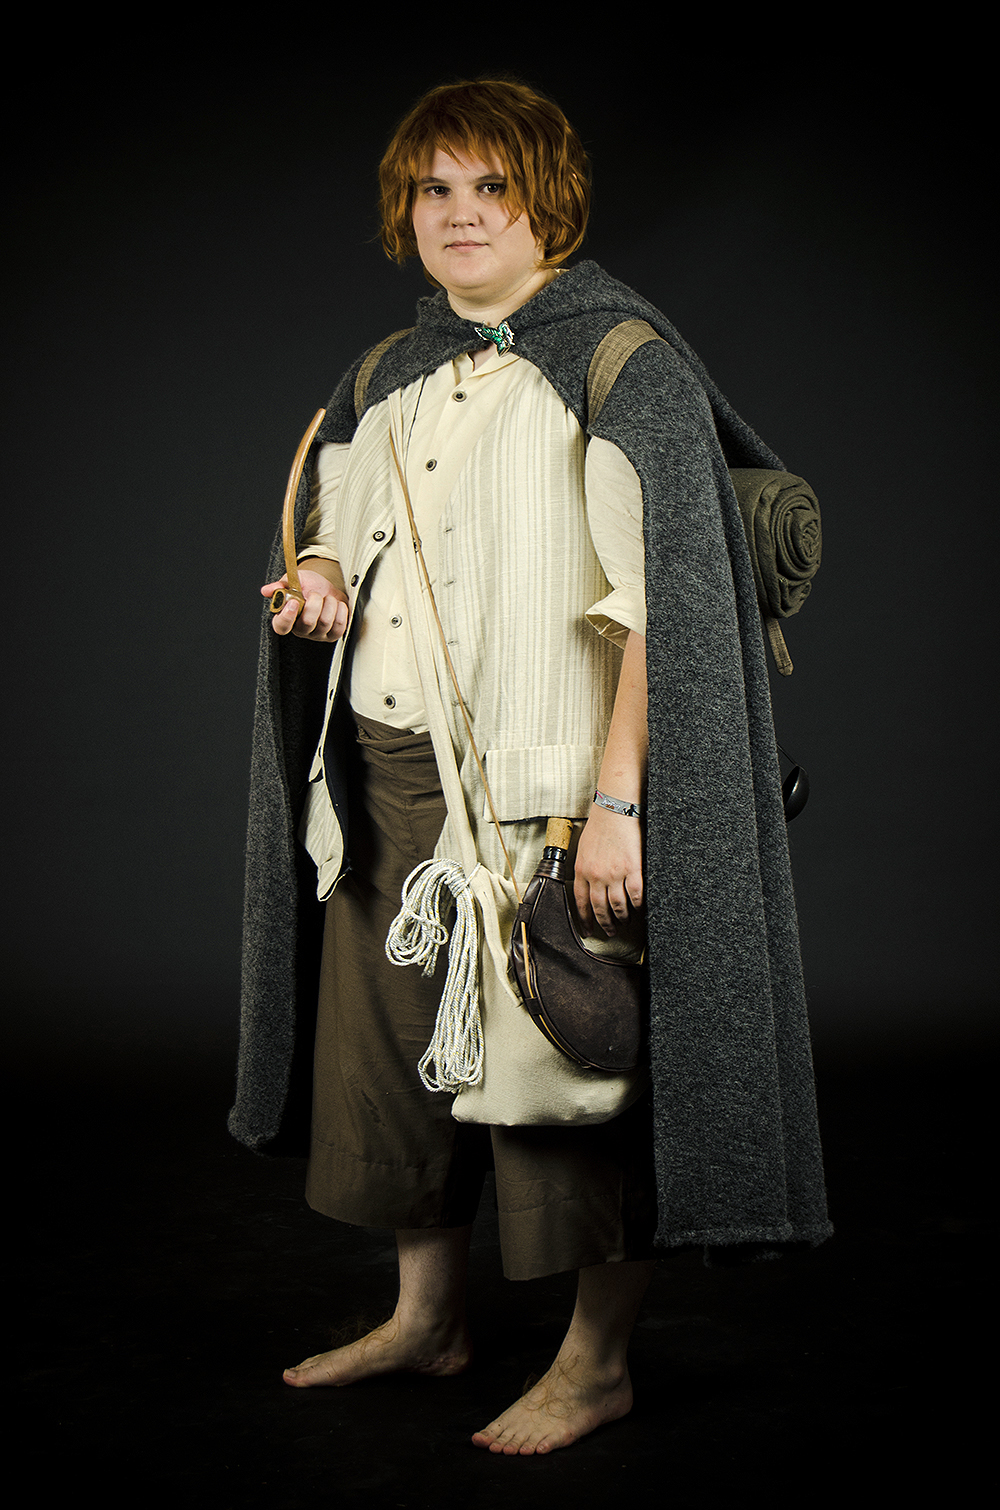 Lord Of The Rings Frodo Costume